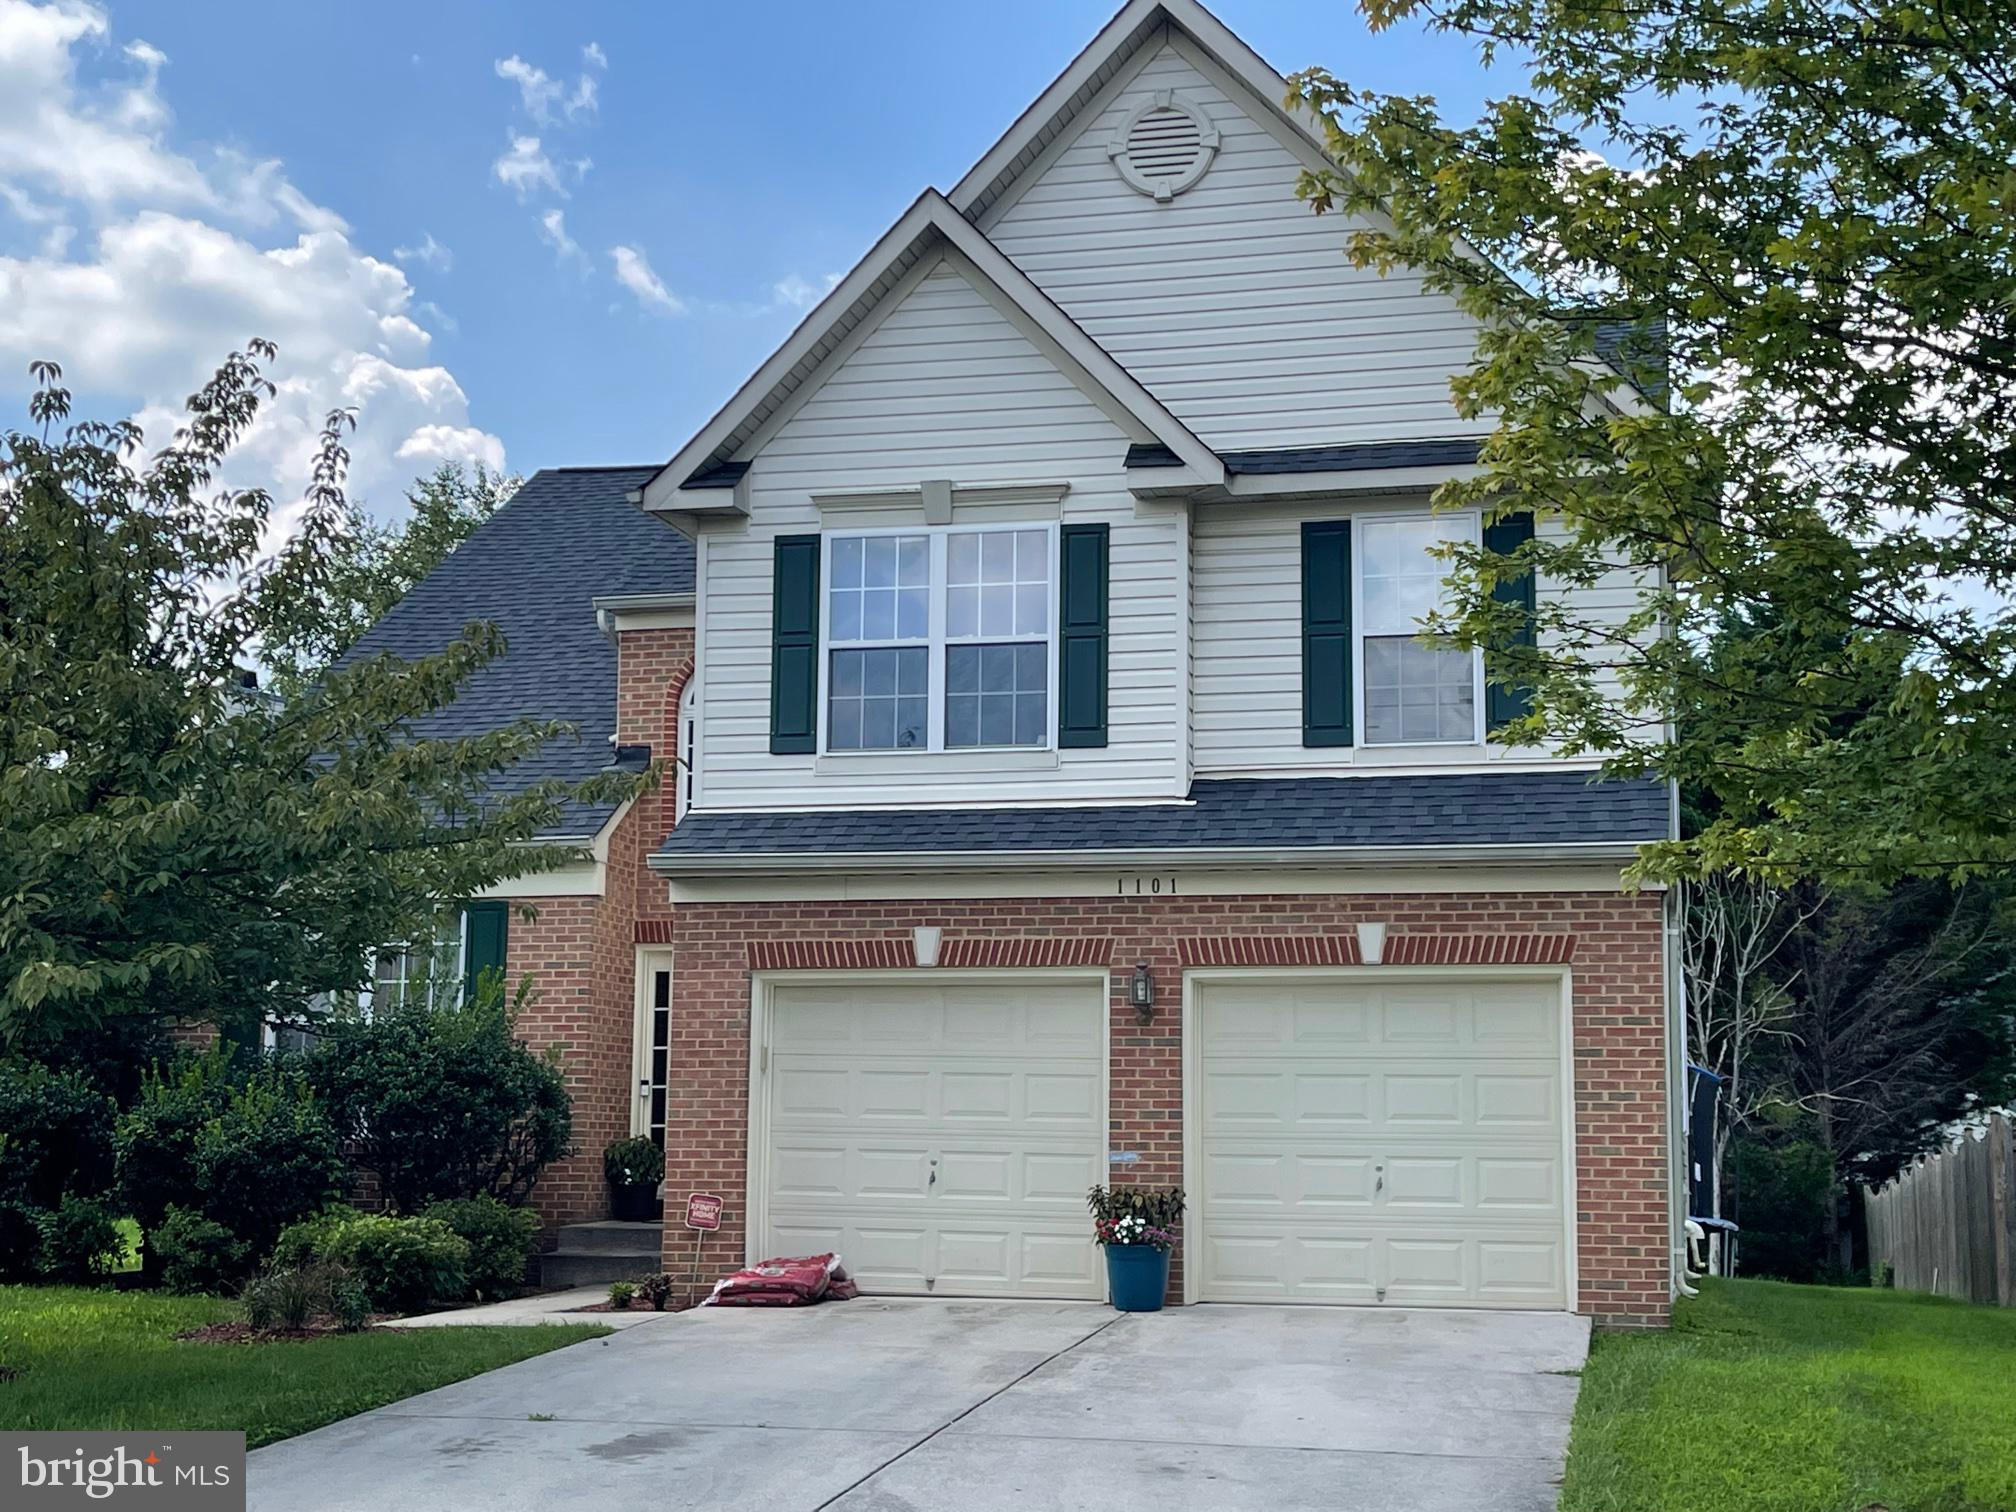 Beautiful home in Perrywood featuring 4 bedrooms on the upper level, the Primary bedroom has an ensu